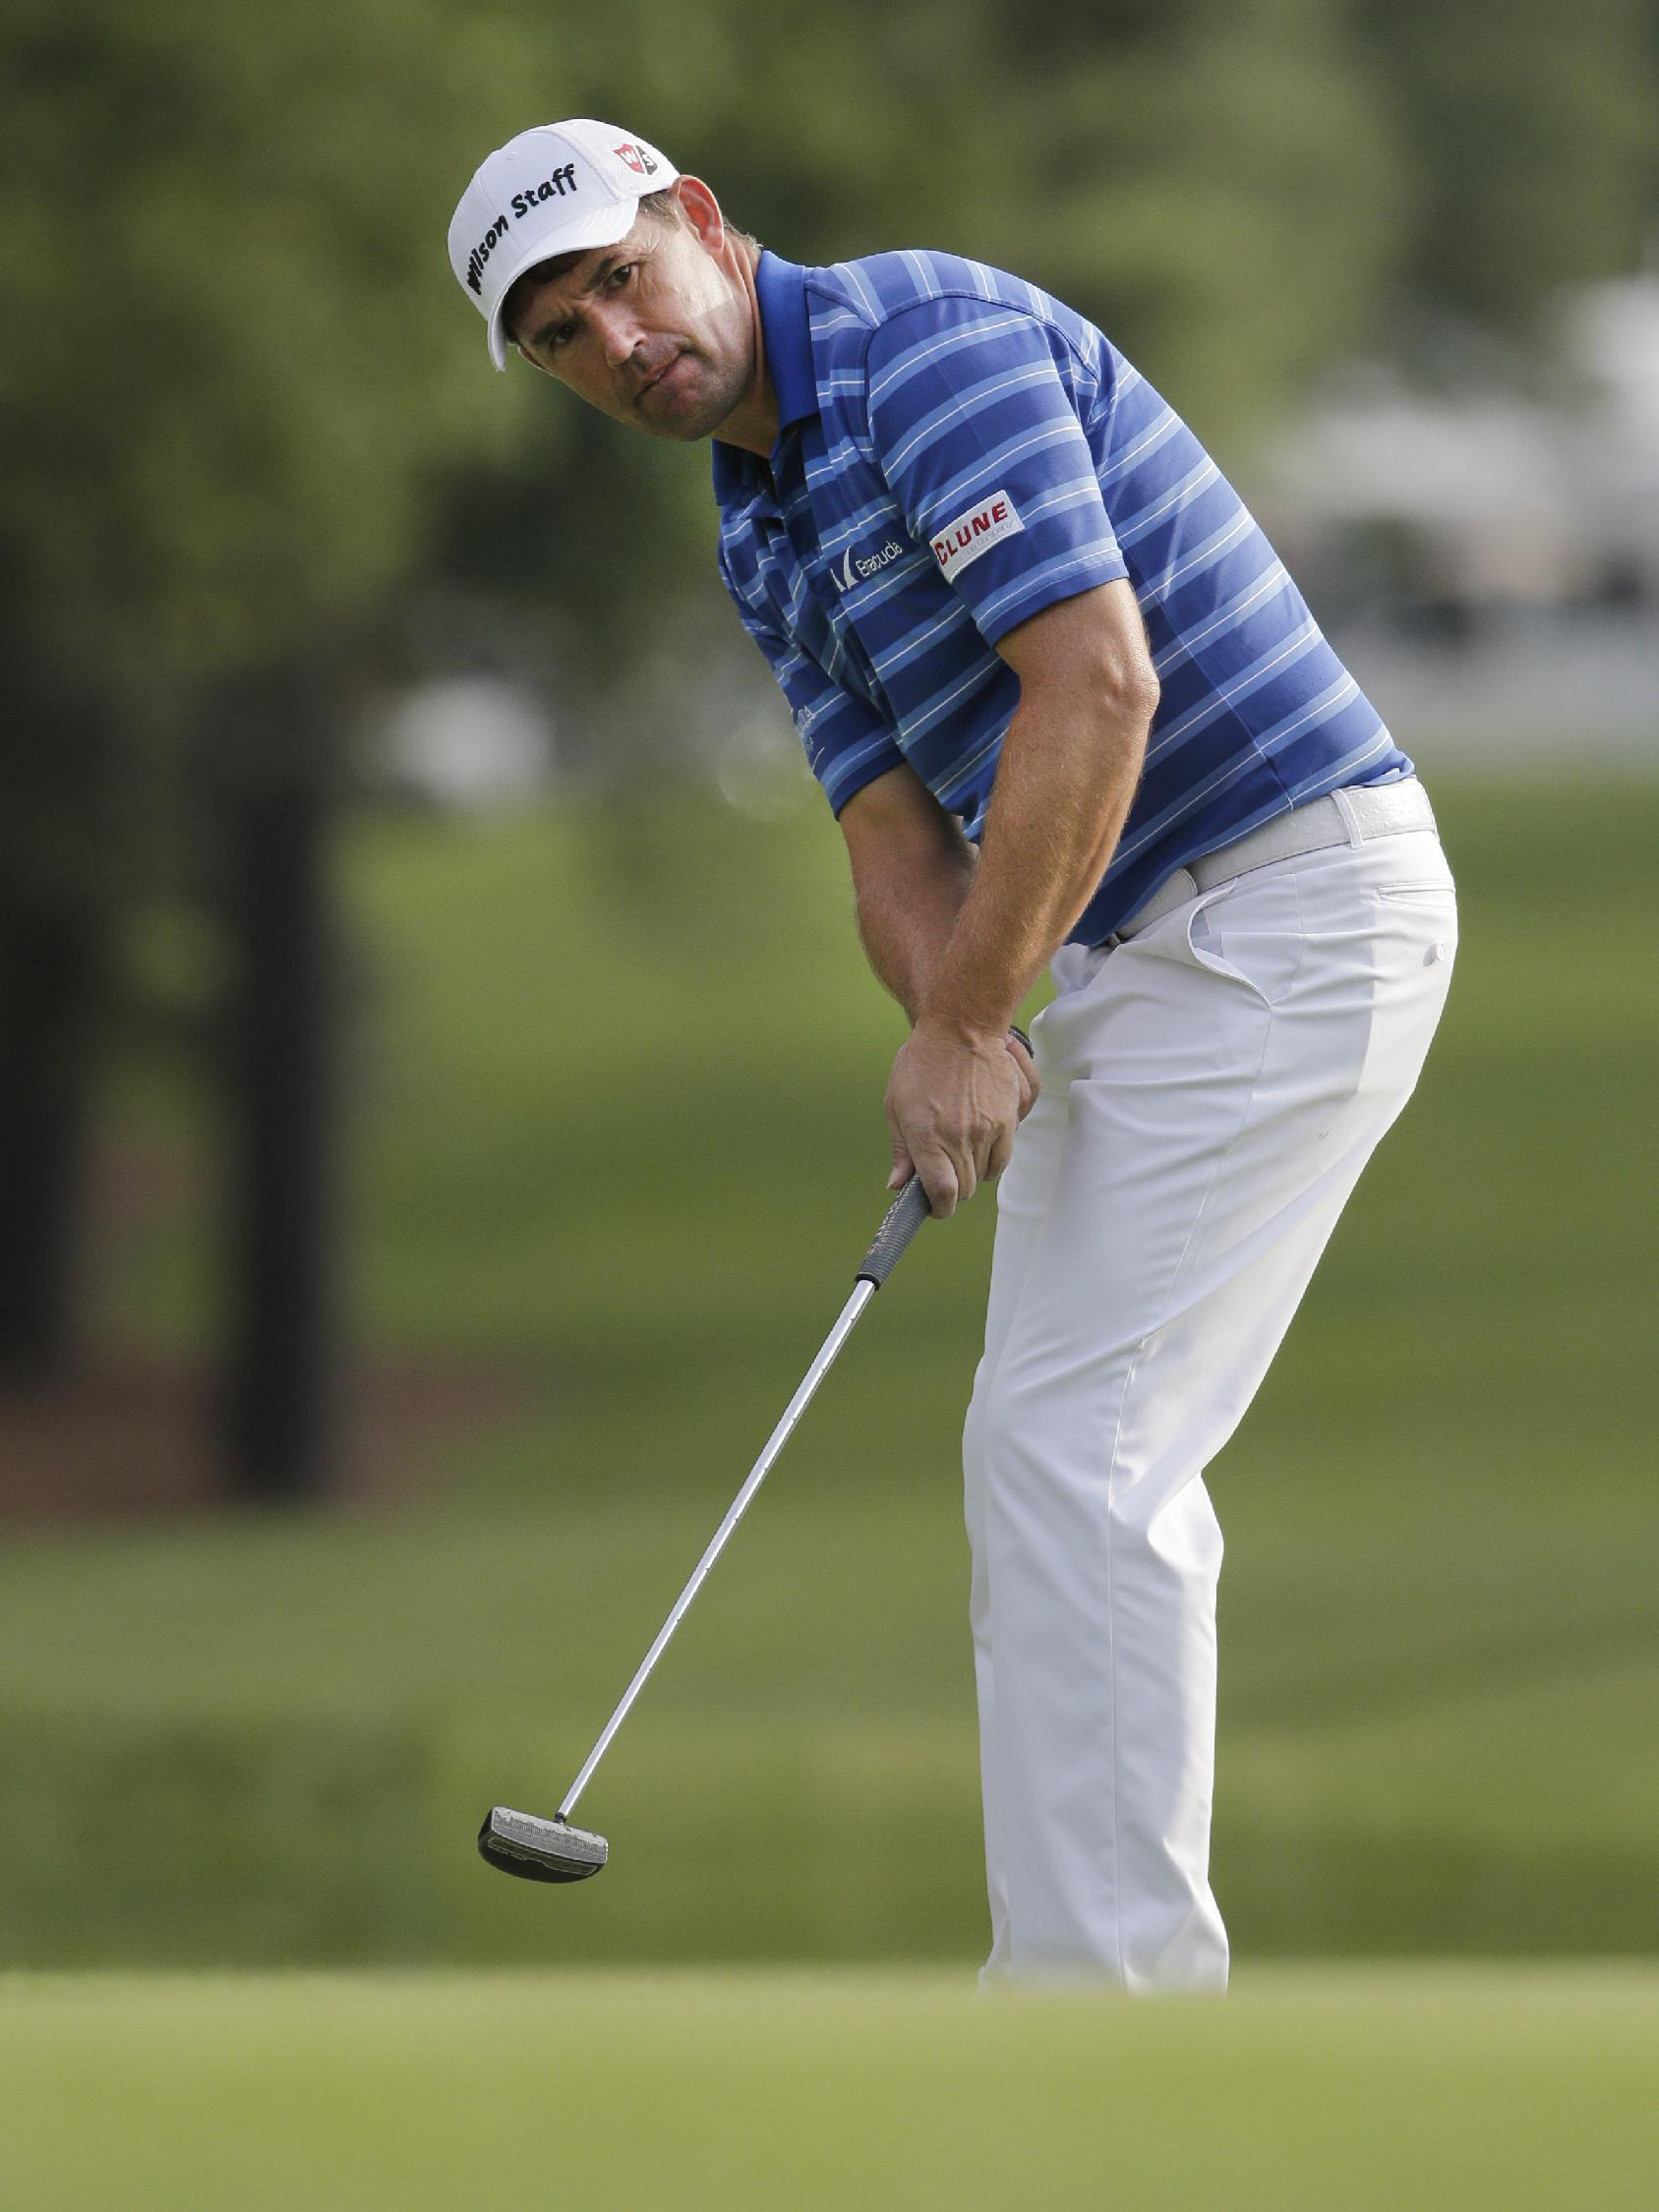 France's Alexander Levy among 16 to qualify for US Open